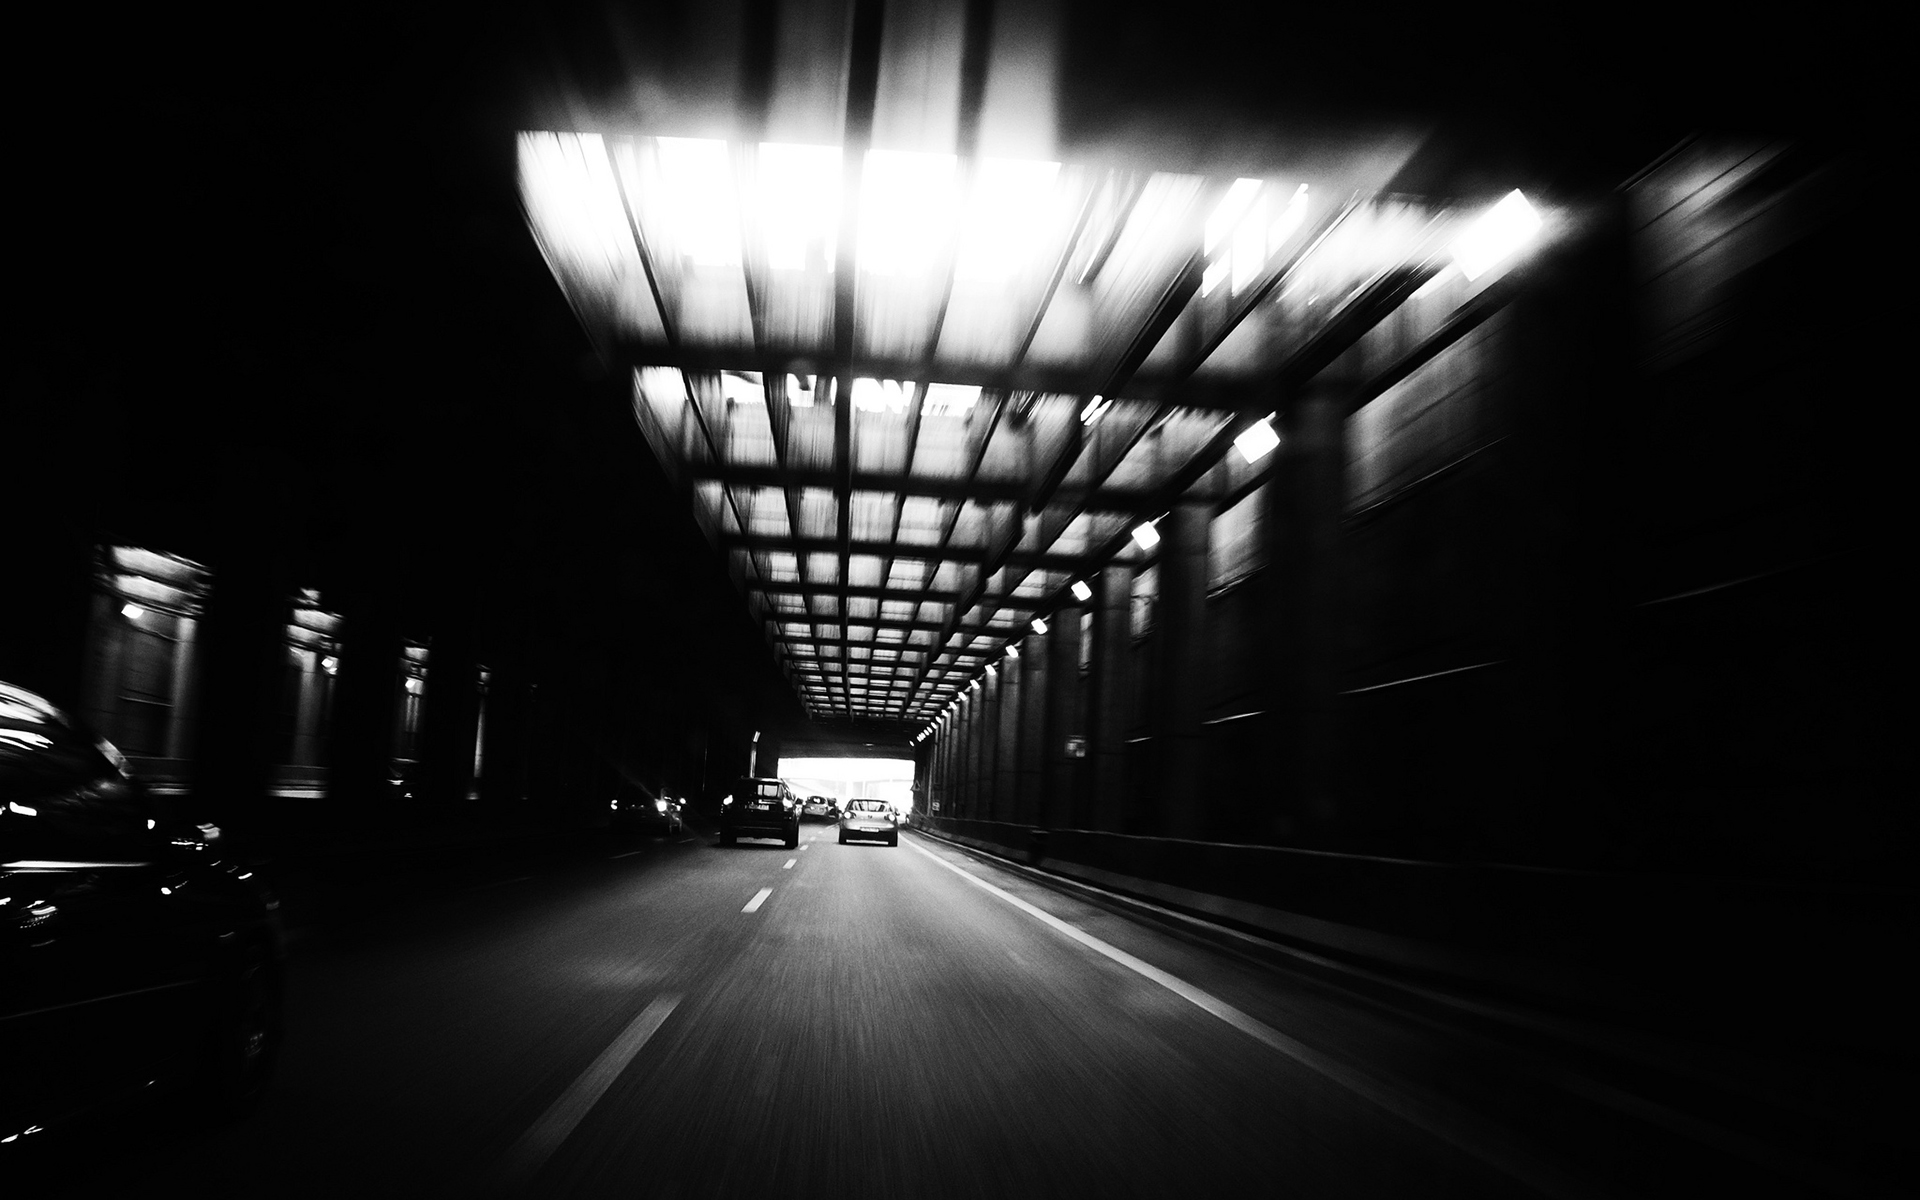 Tunnel BW Road Black White Cars Wallpaper | 1920x1200 | 45312 | WallpaperUP